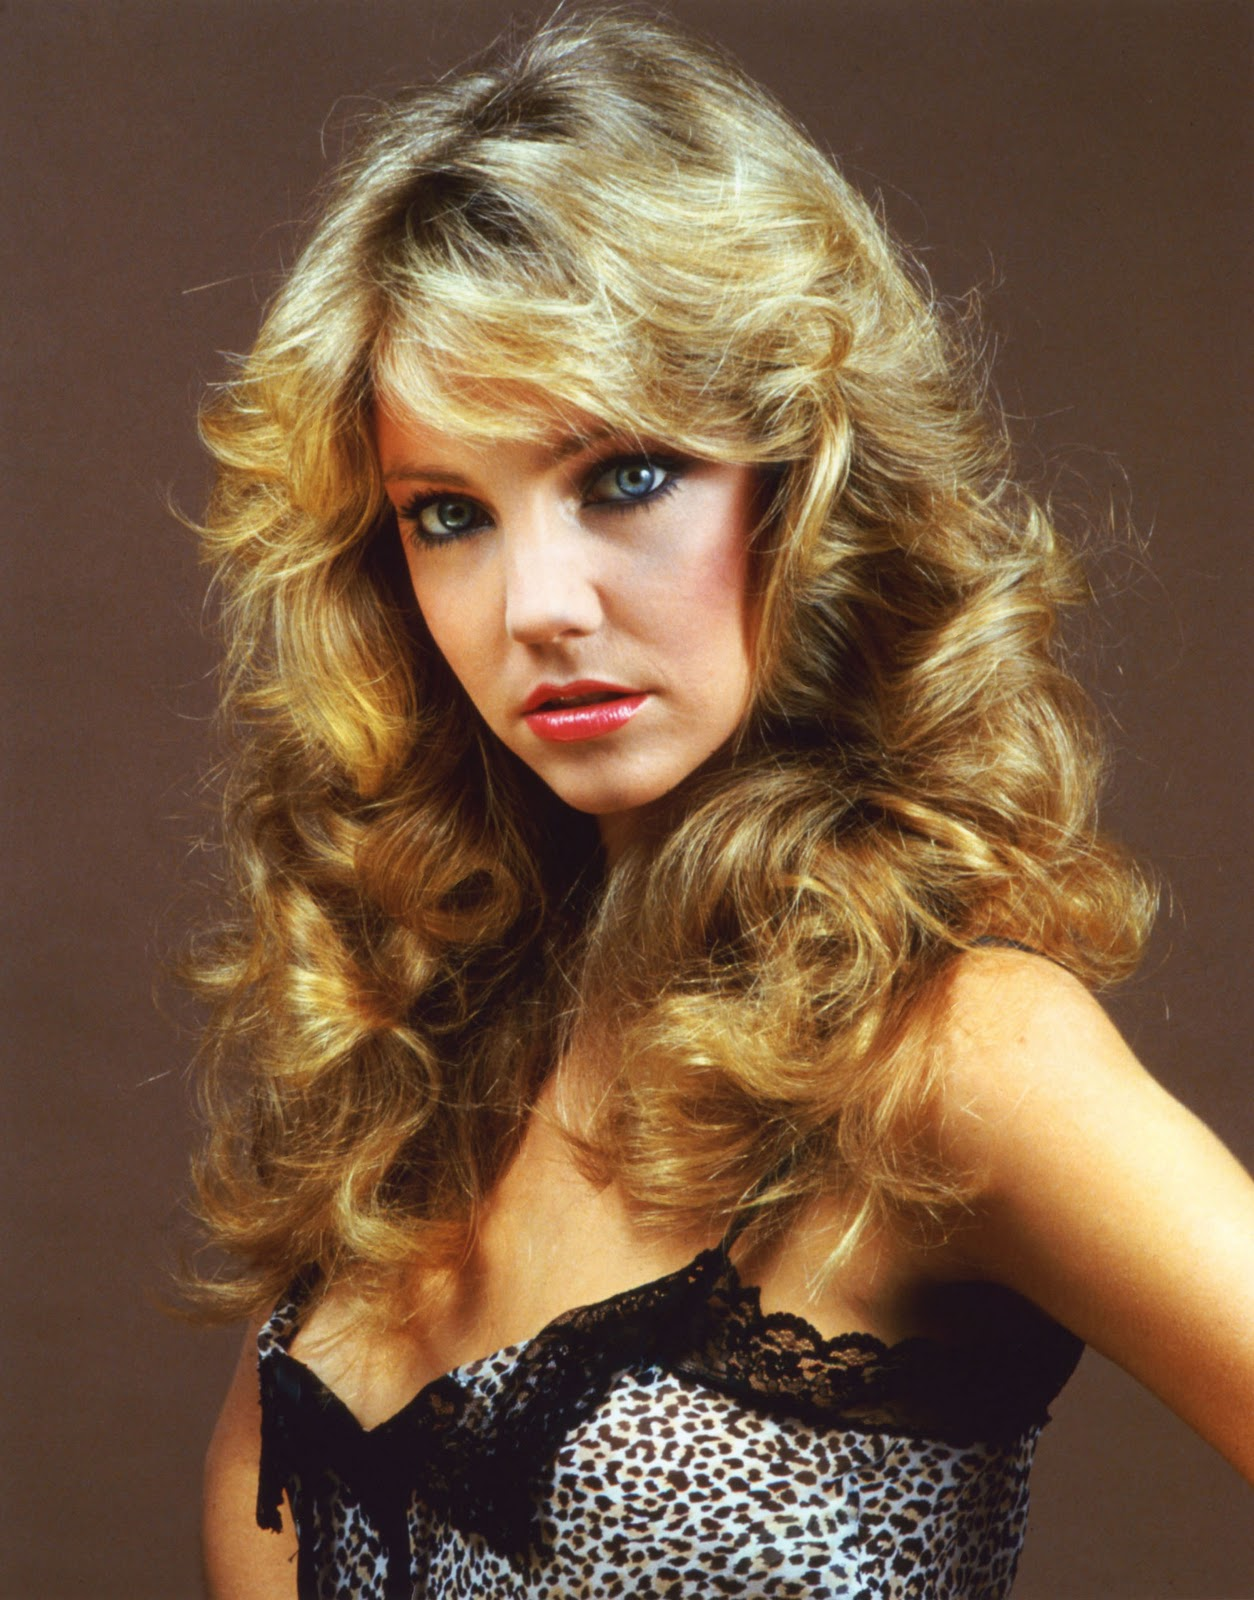 1254x1600 - Heather Locklear Wallpapers 26